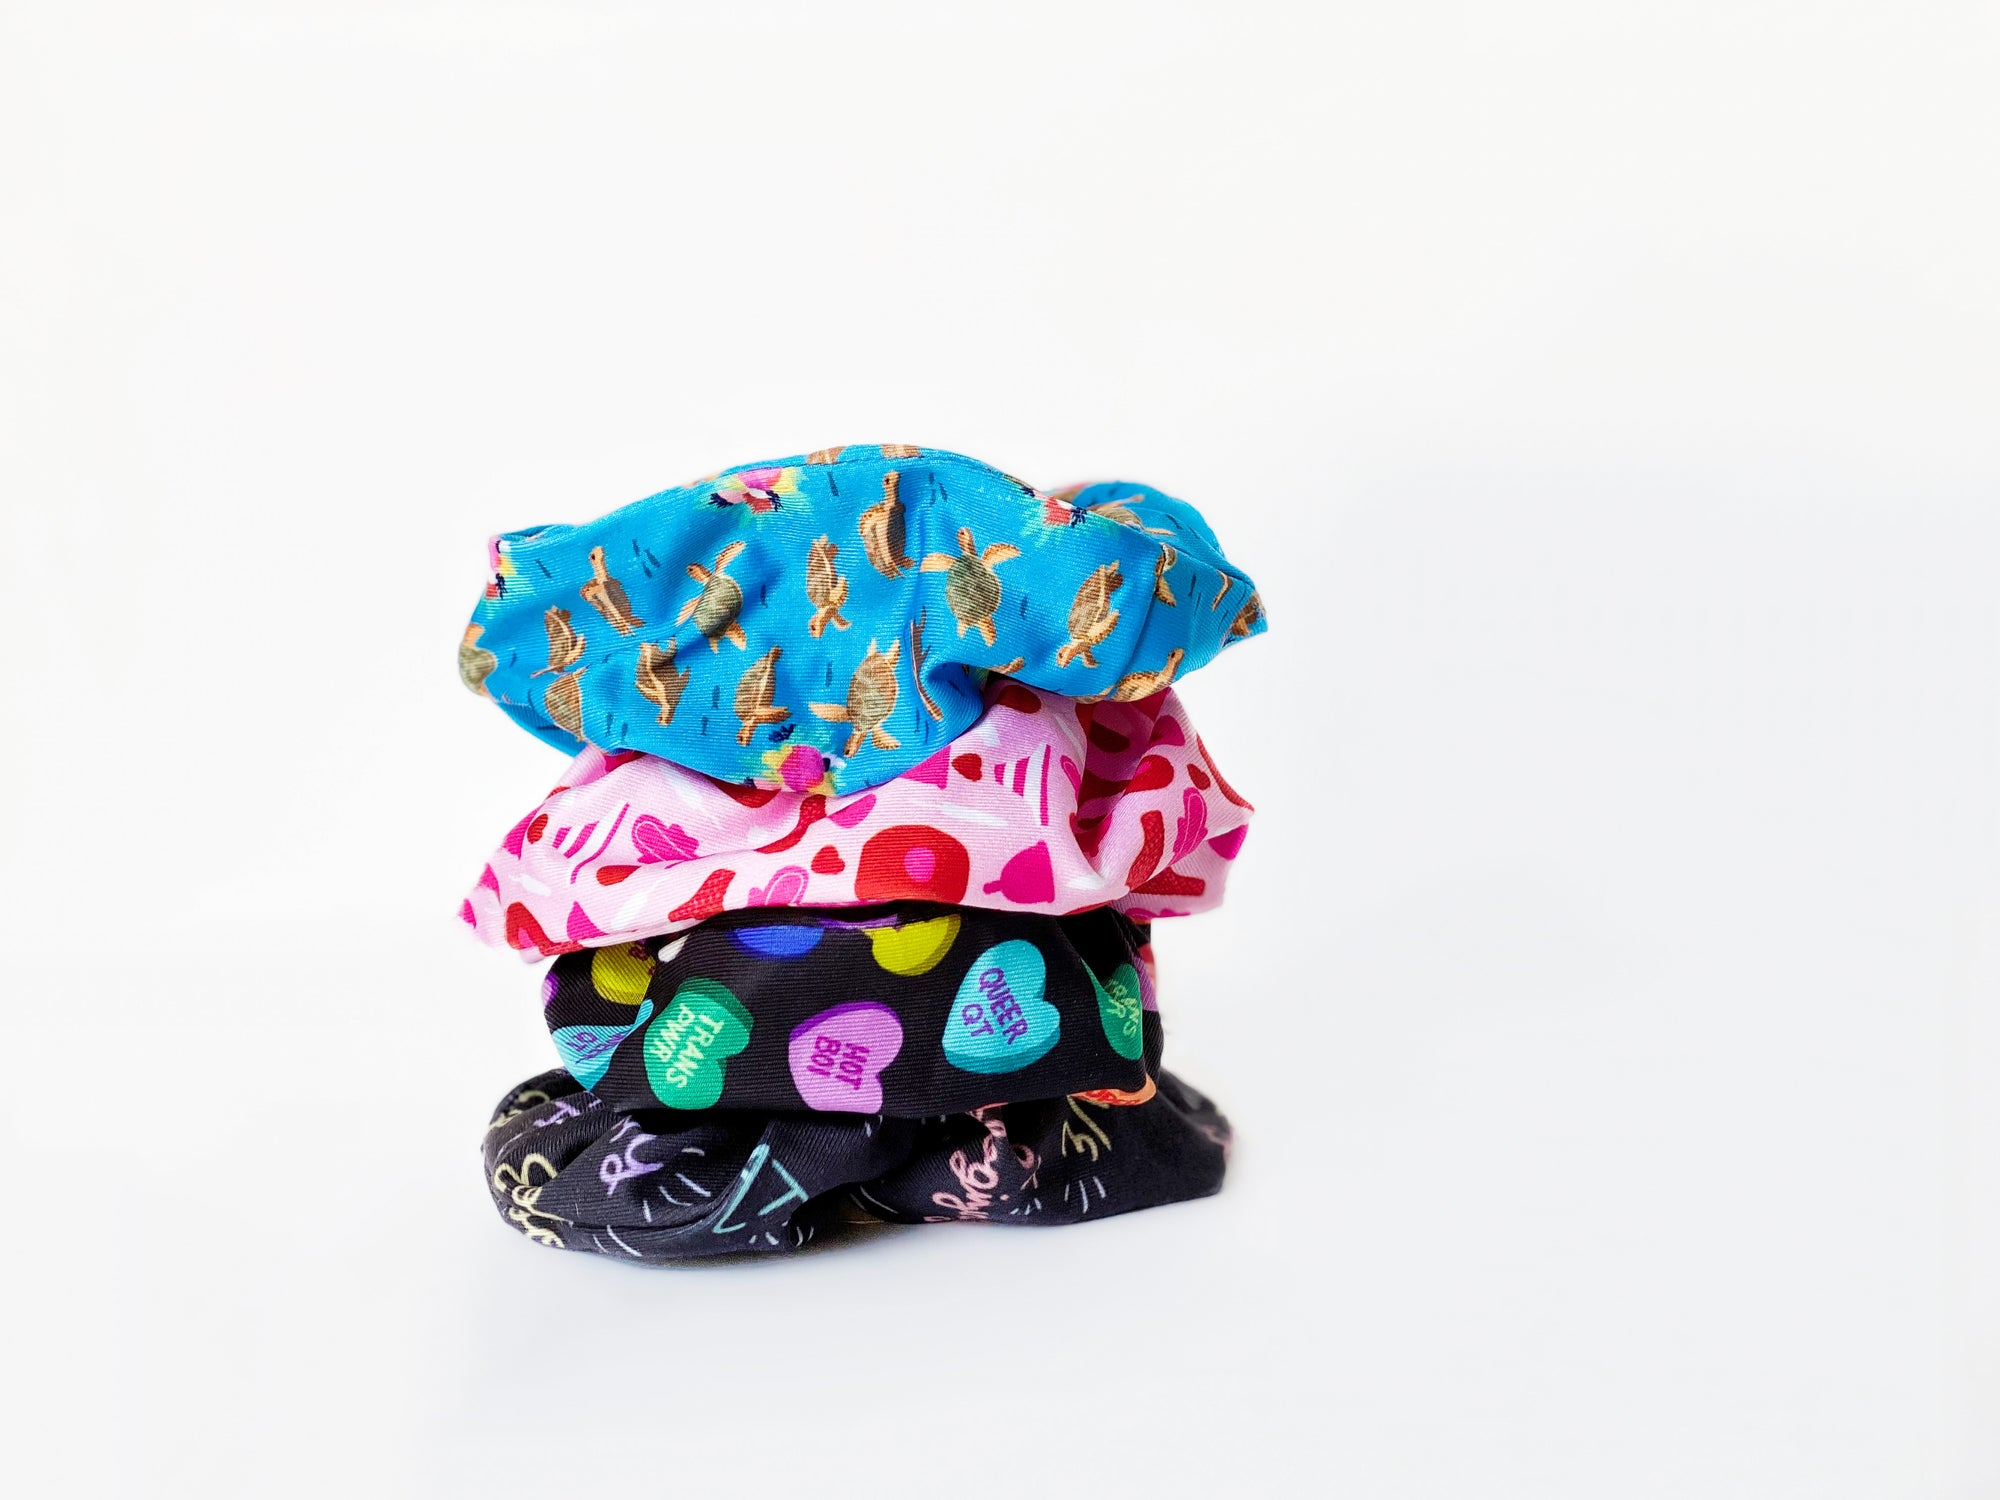 unique scrunchie designs by independent artists